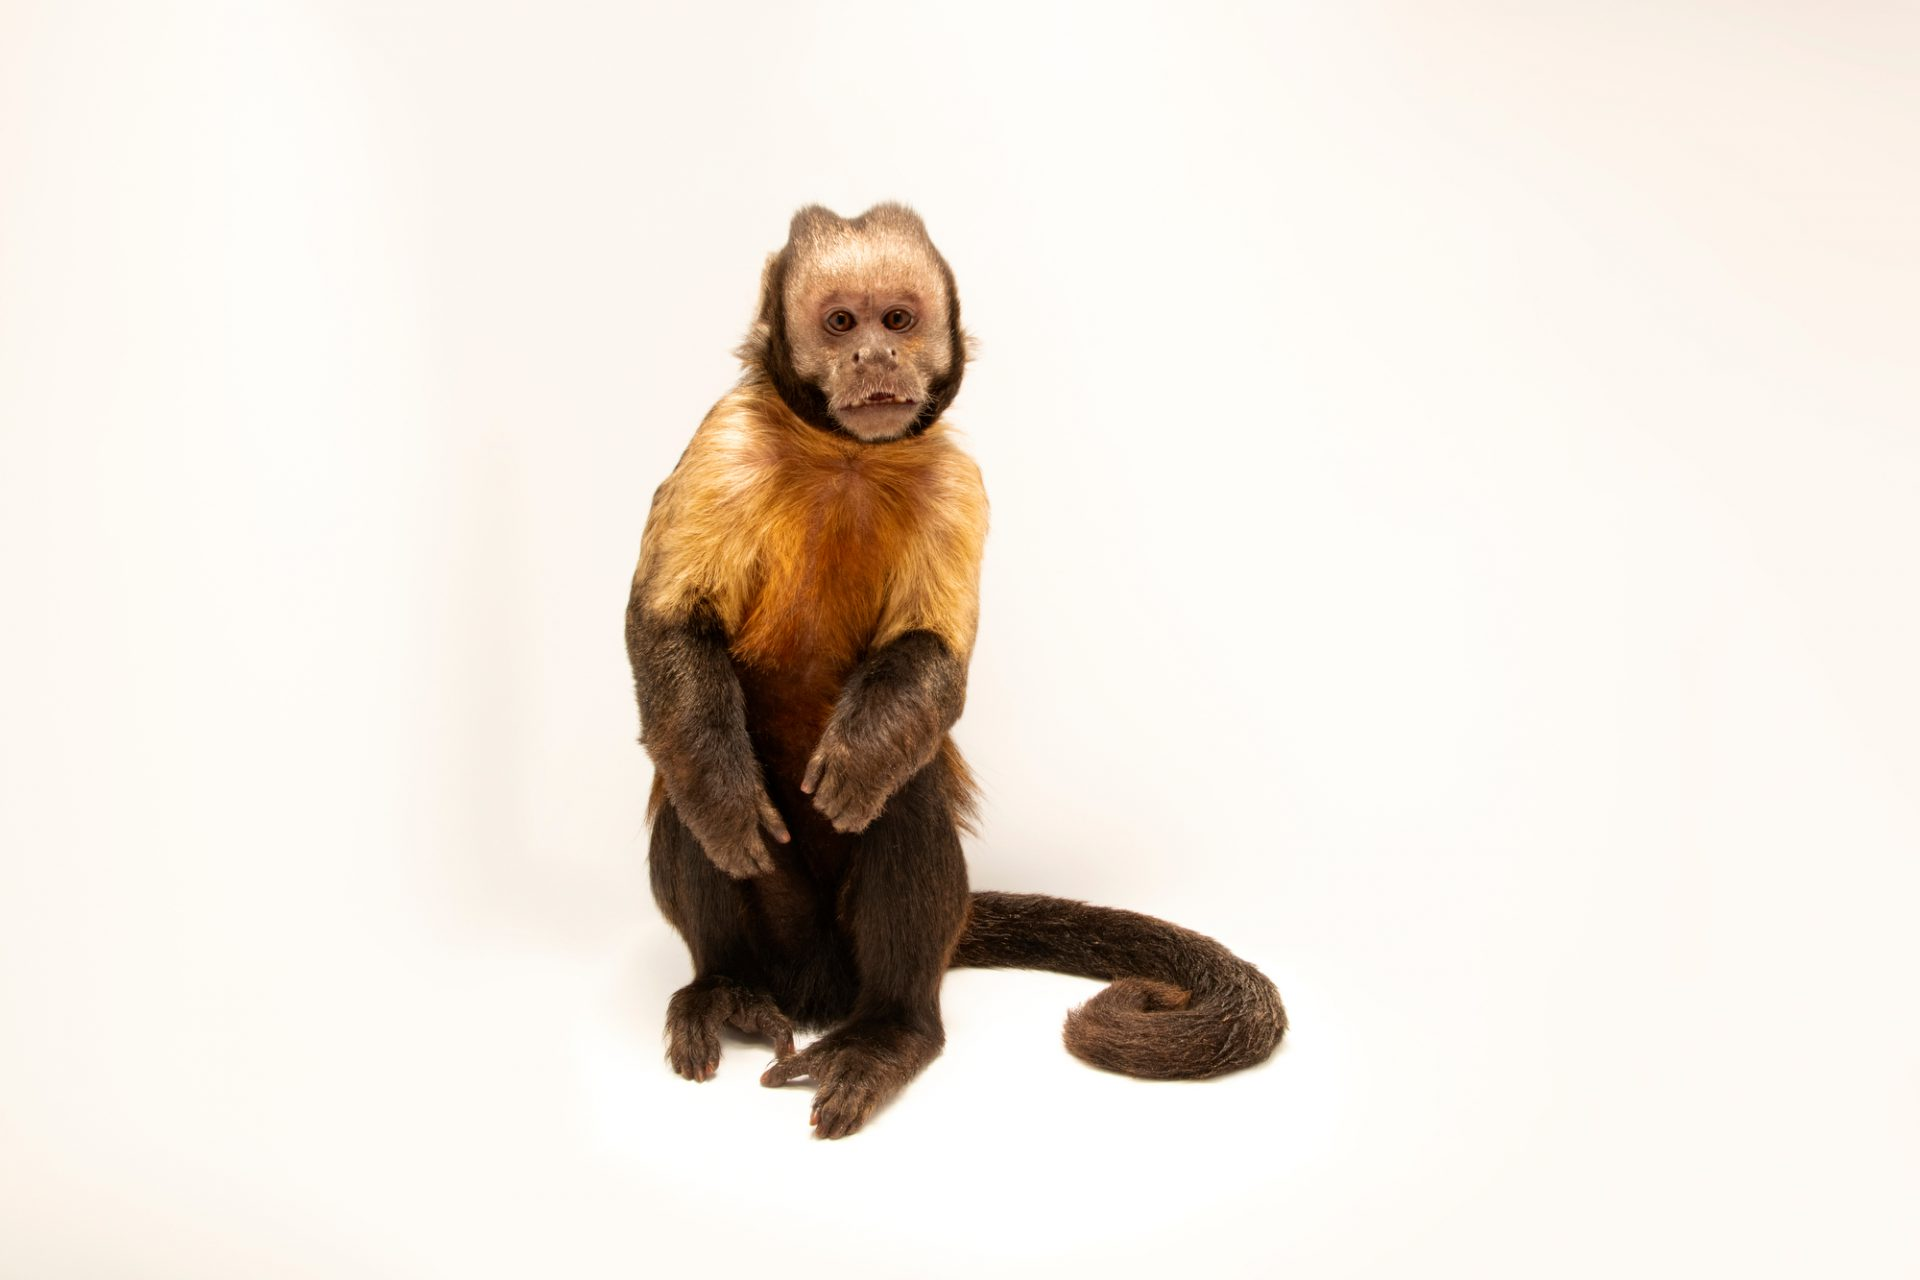 Photo: Dracula, a critically endangered Golden-bellied capuchin (Cebus xanthosternos) at the Lisbon Zoo